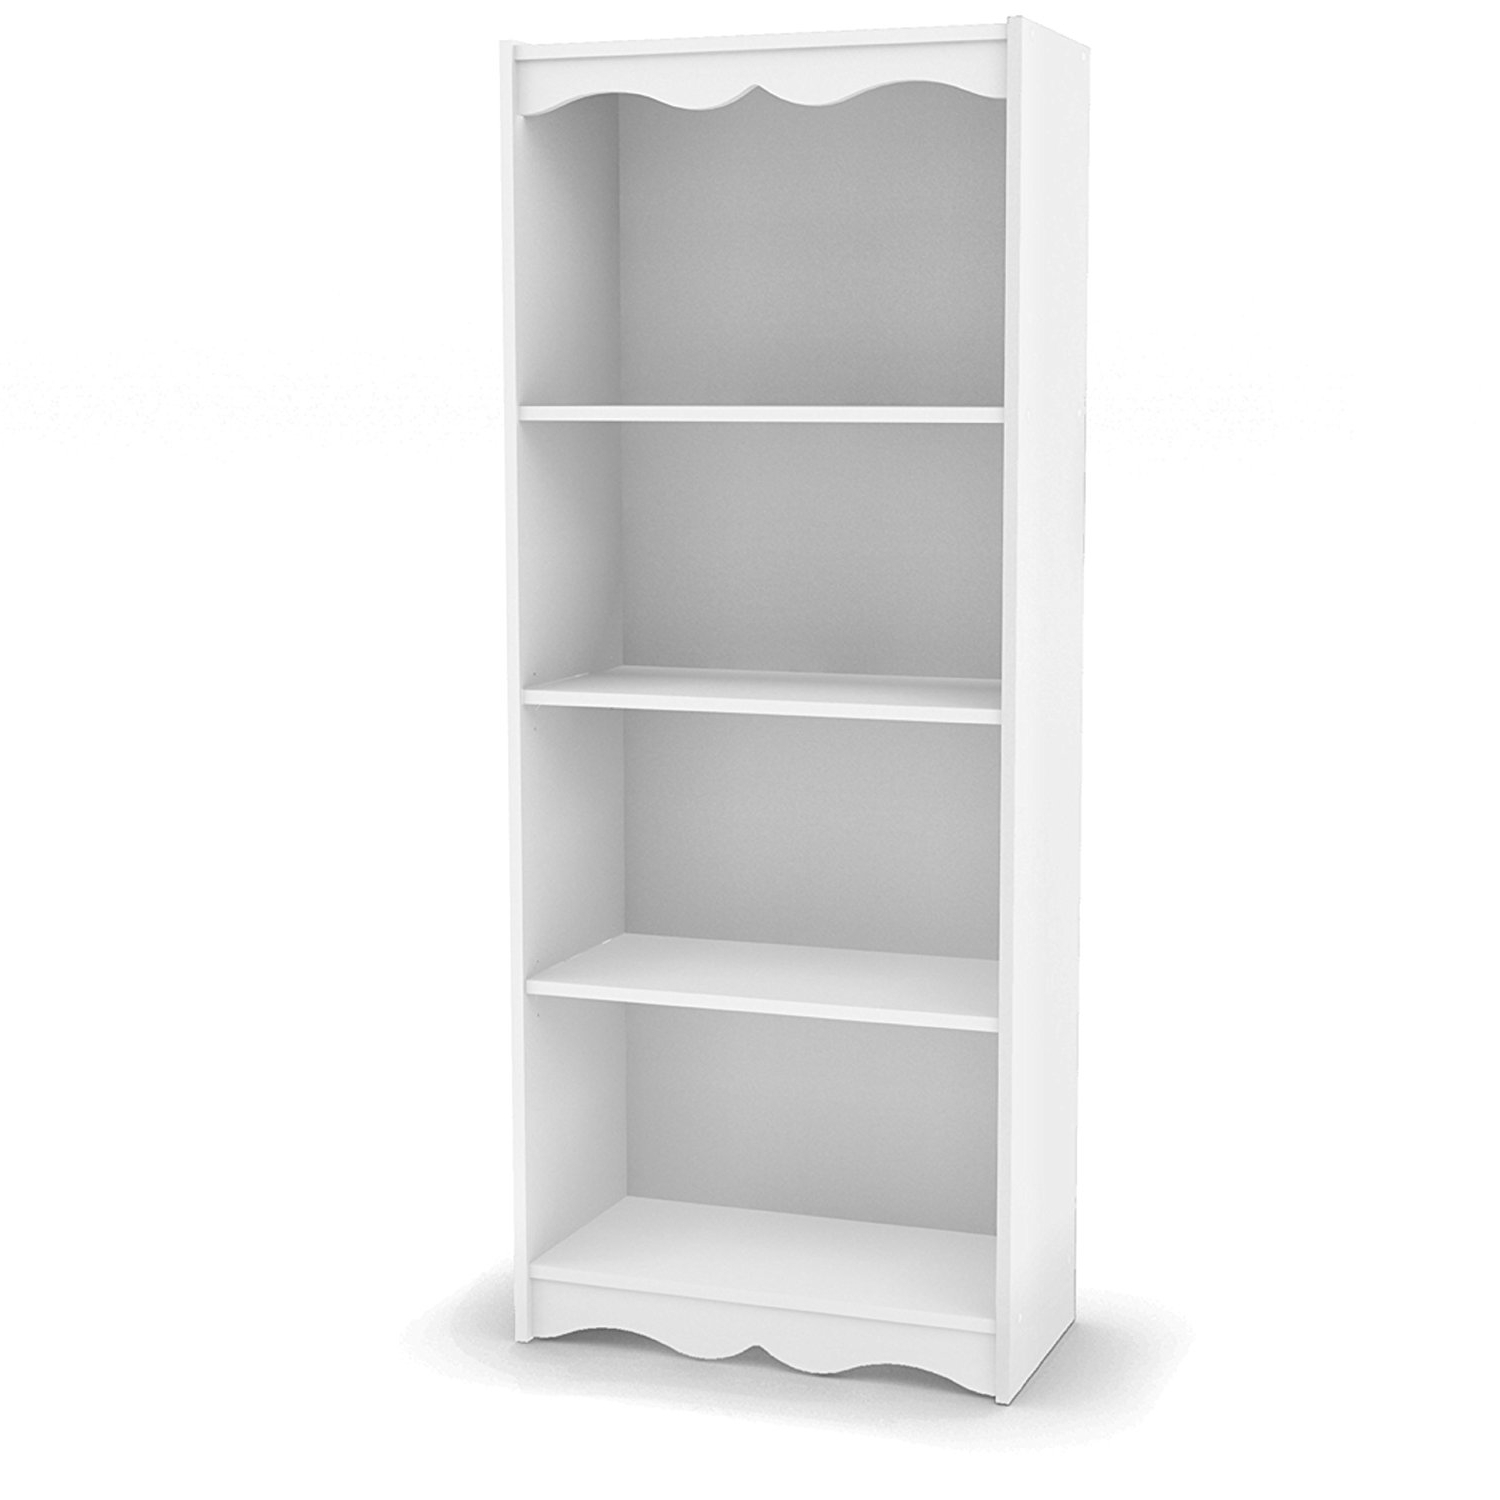 Most Popular Narrow White Bookcases Regarding Amazon: Sonax Hawthorn 60 Inch Tall Bookcase, Frost White (View 4 of 15)